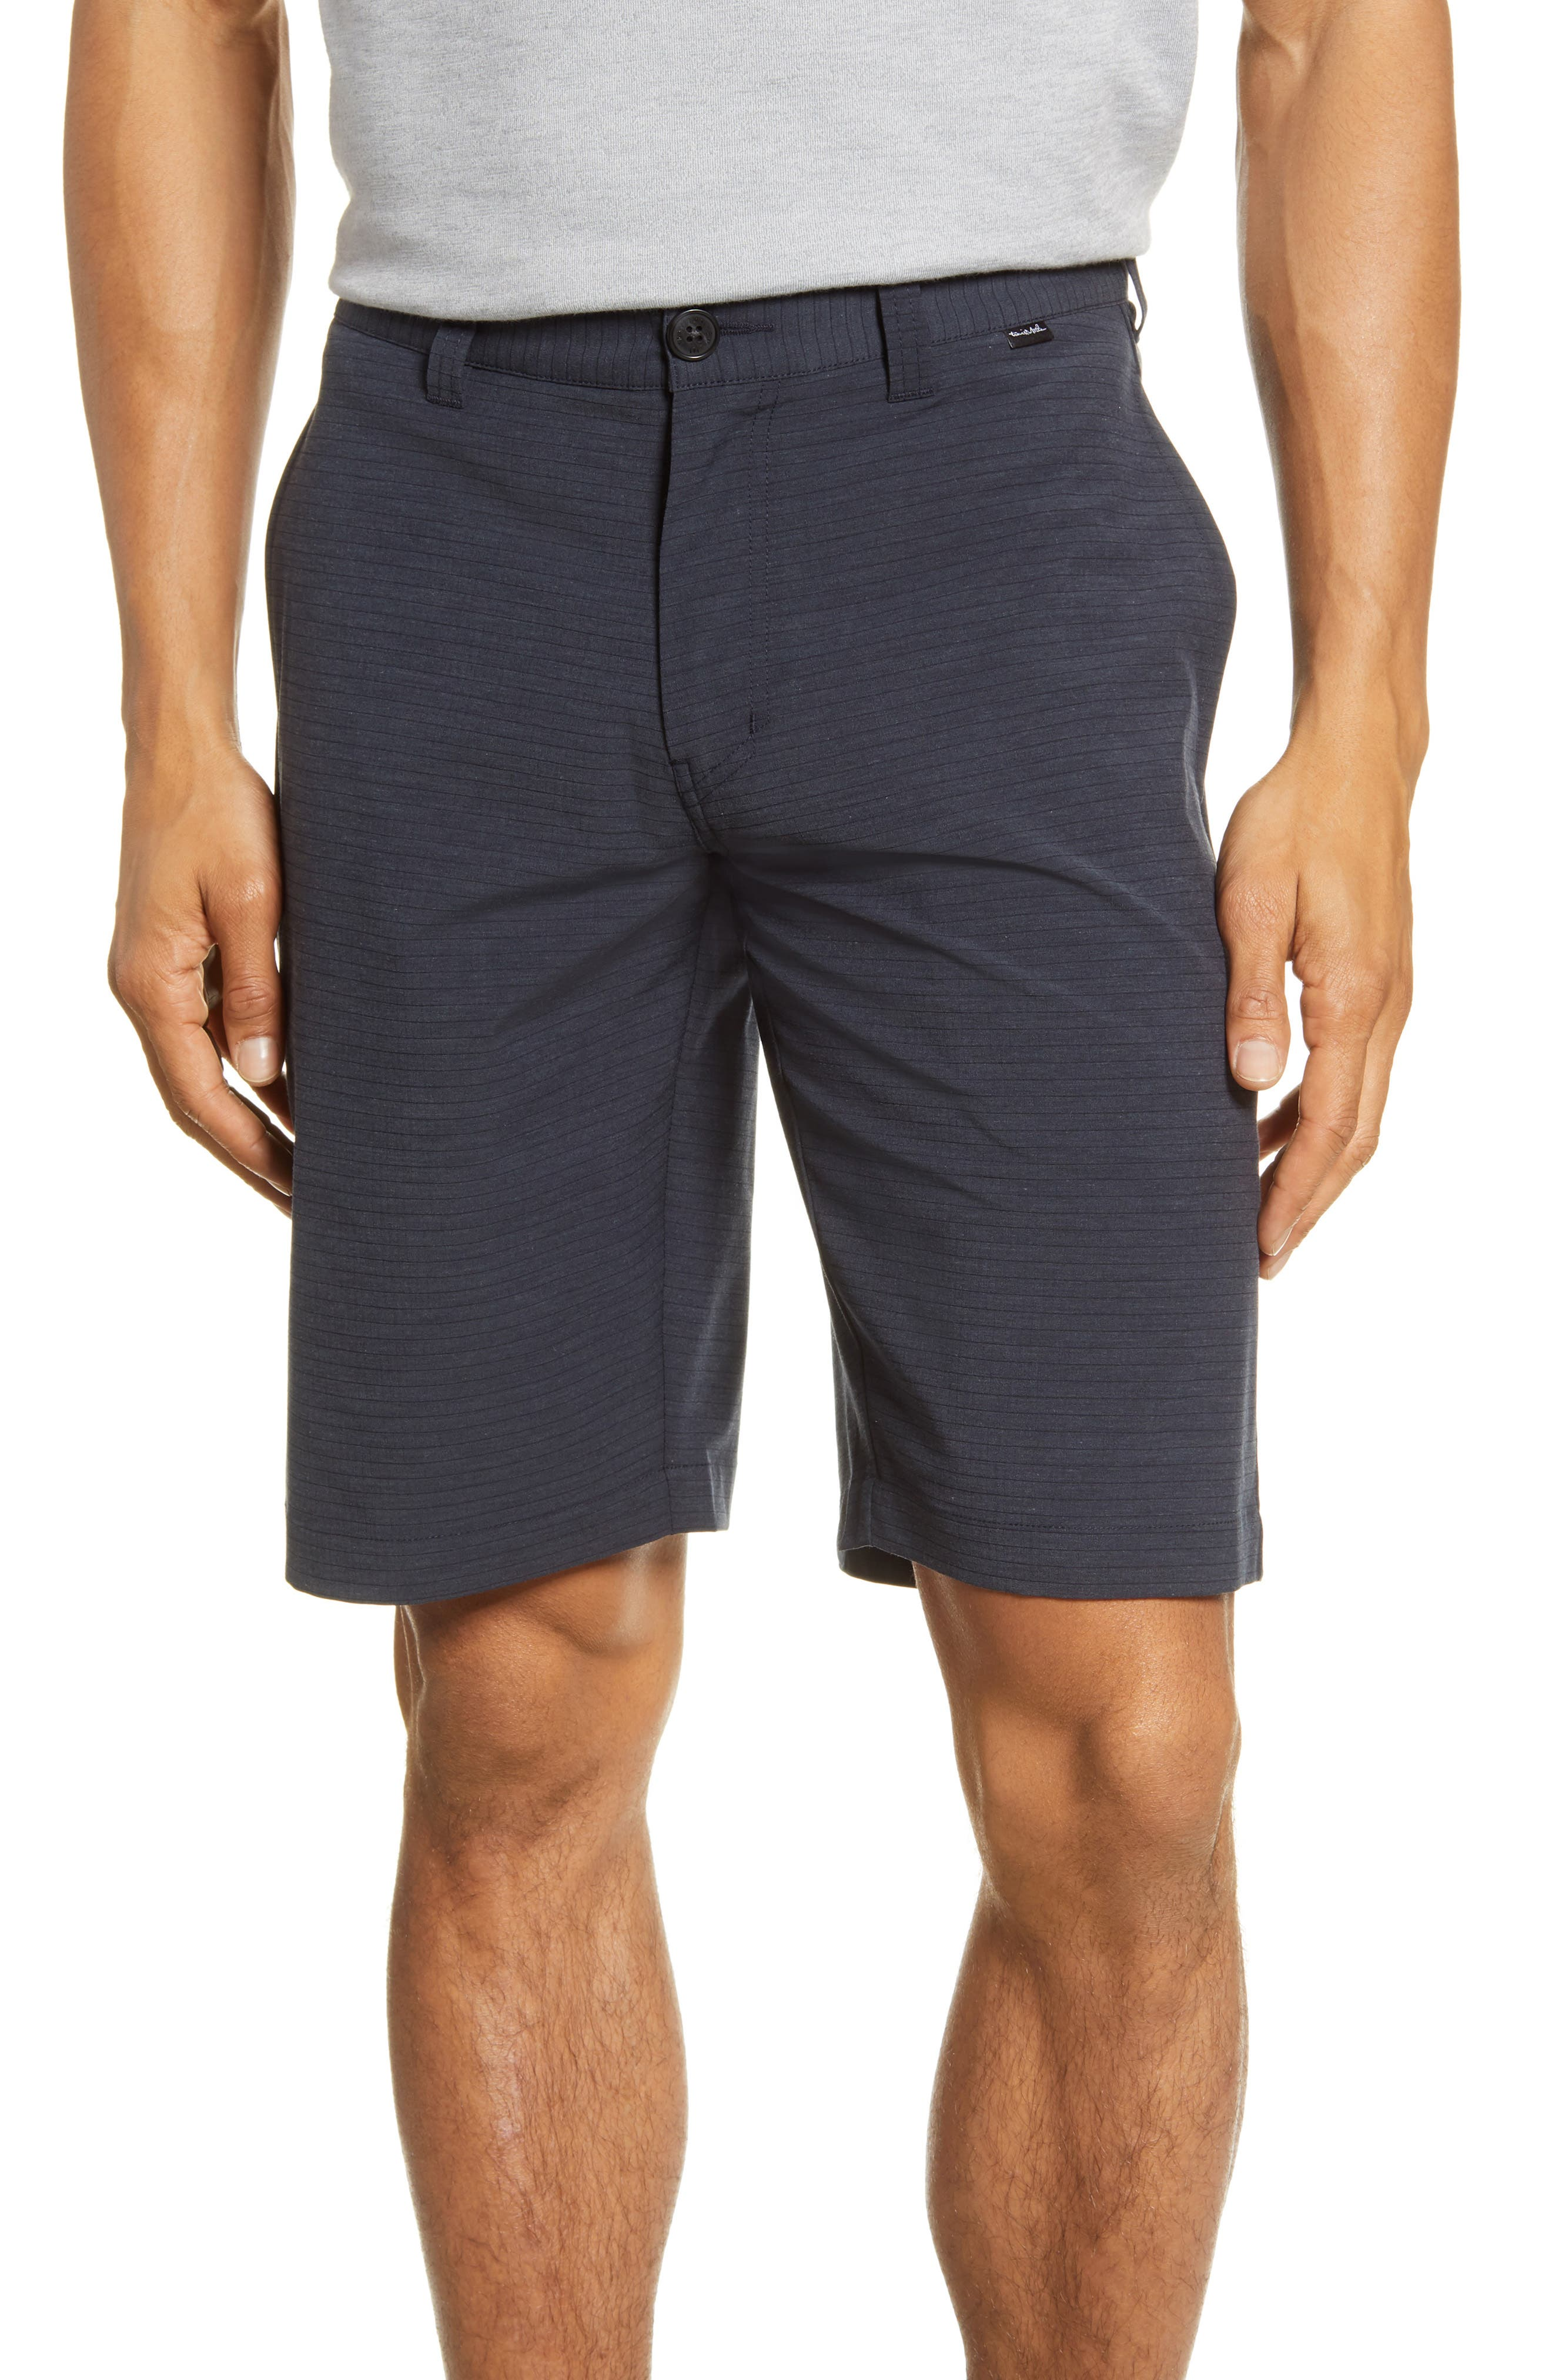 Slim stripes add to the laid-back style of stretchy, quick-dry flat-front shorts that look great at the golf course, the beach or any weekend get-together. Style Name: Travismathew Kendo Performance Shorts. Style Number: 5656912. Available in stores.